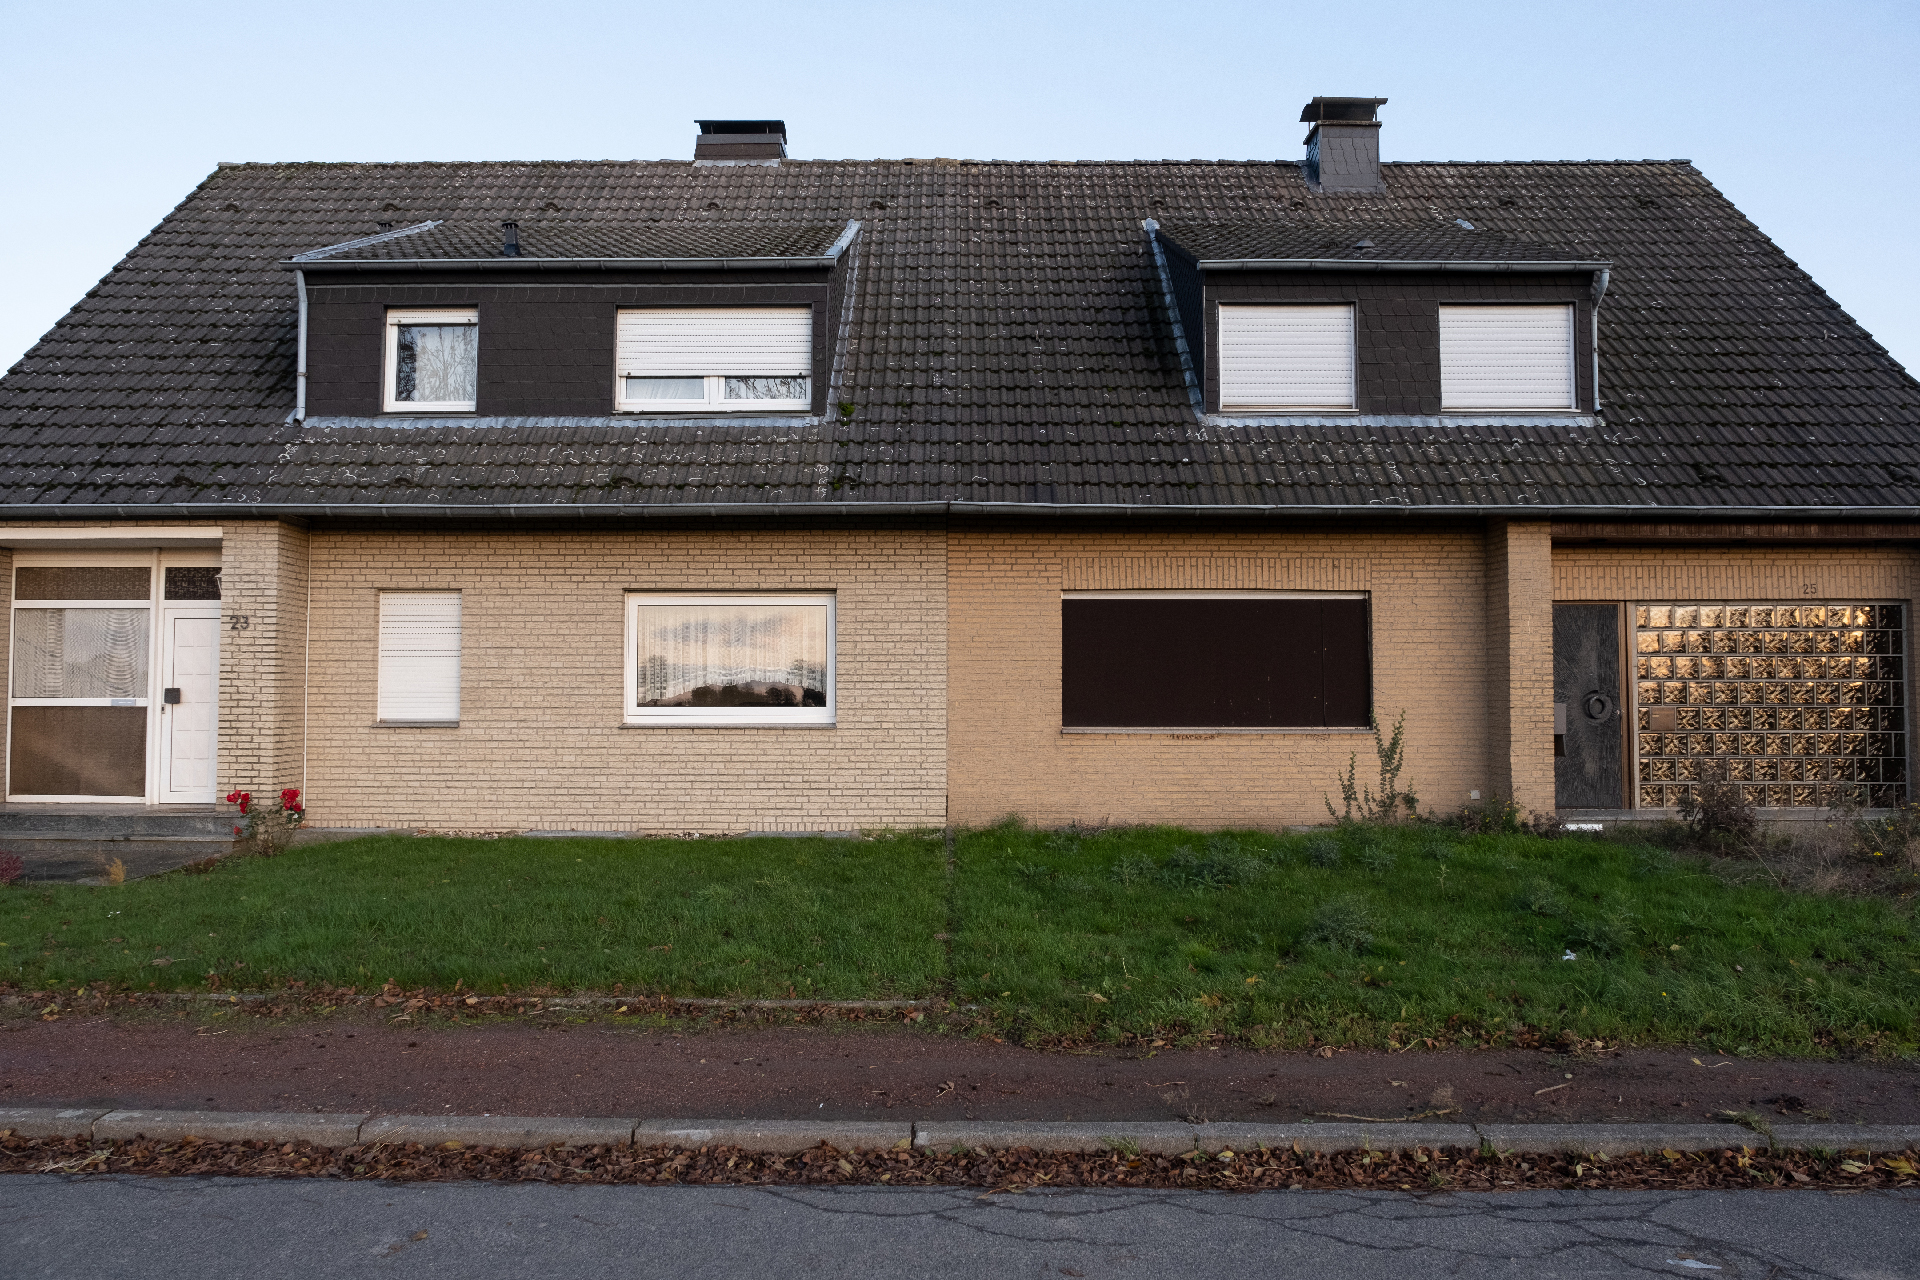 Condemned Housing, Immerath, Germany, 2019